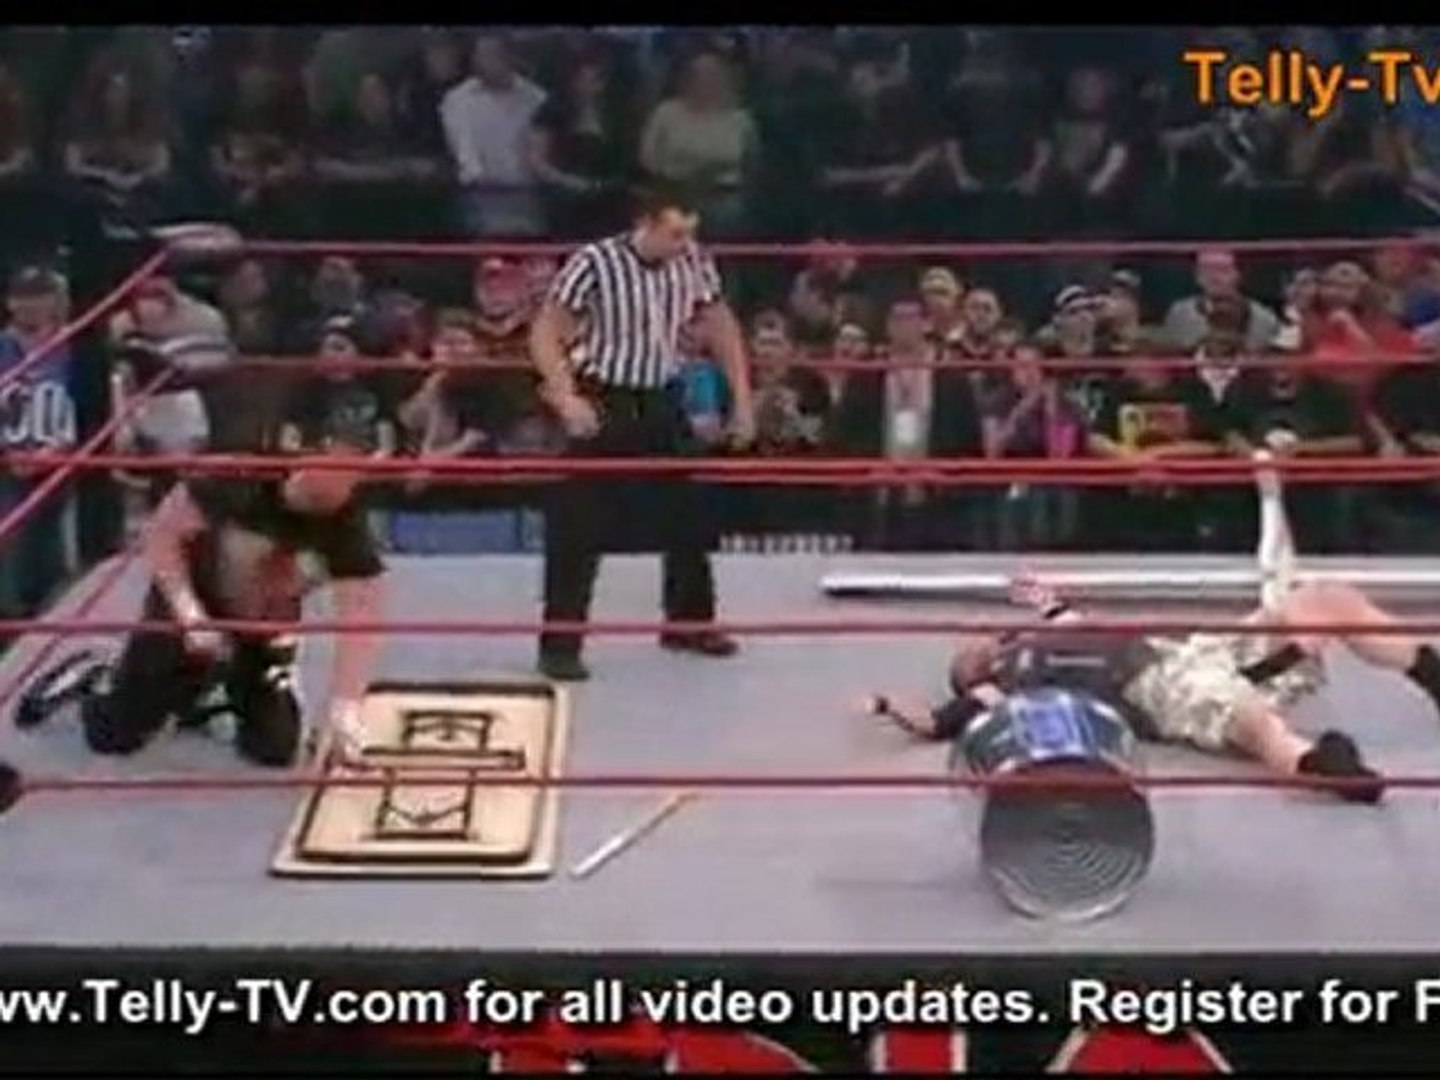 Telly-Tv.com - TNA Victory Road 2011 14th March 2011 pt2